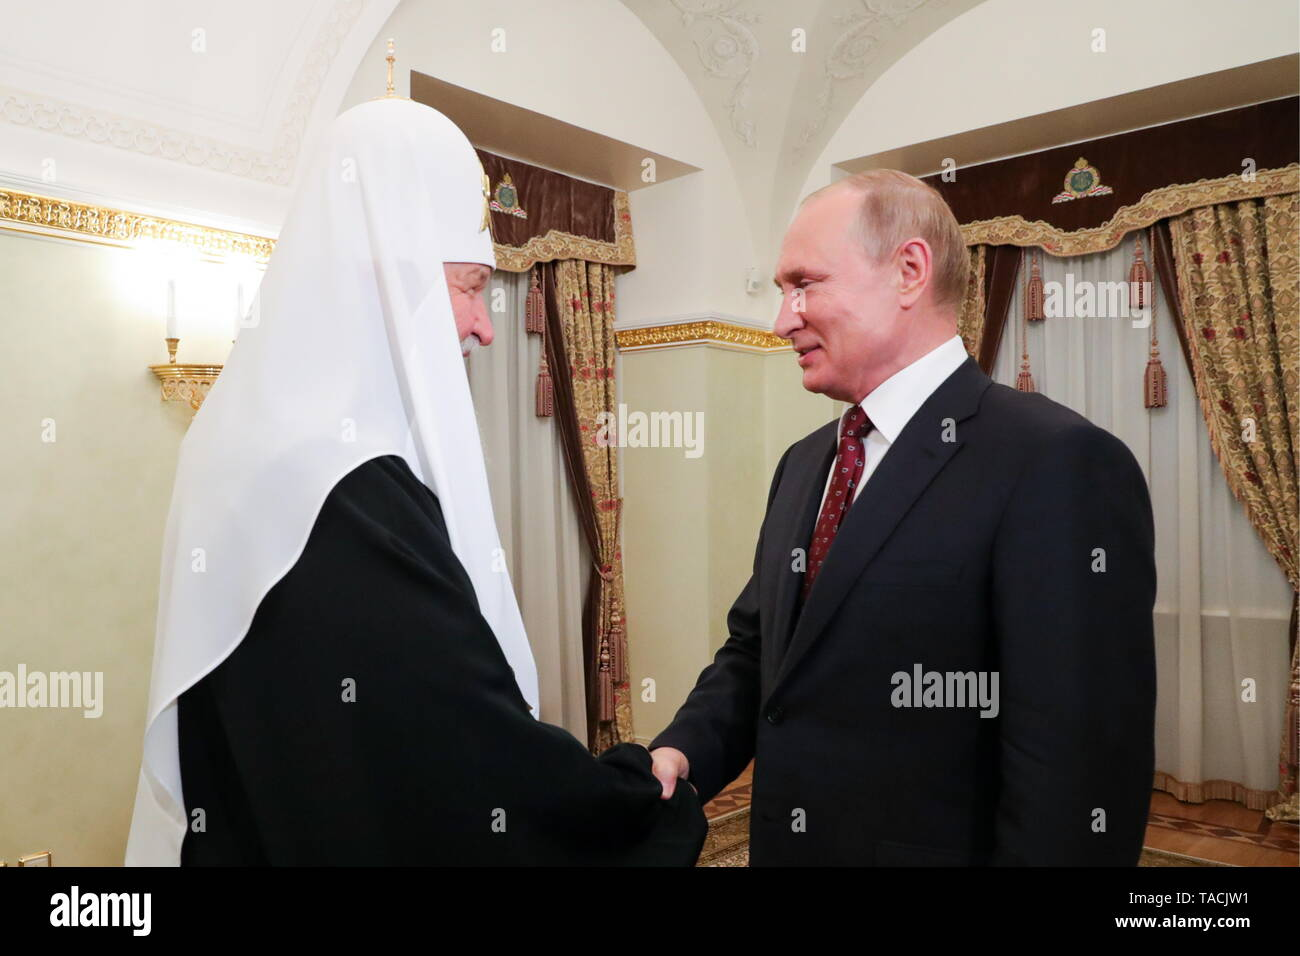 Moscow, Russia. 24th May, 2019. MOSCOW, RUSSIA - MAY 24, 2019: Patriarch Kirill (L) of Moscow and All Russia and Russia's President Vladimir Putin shake hands during a meeting at the Moscow Kremlin. Mikhail Klimentyev/Russian Presidential Press and Information Office/TASS Credit: ITAR-TASS News Agency/Alamy Live News - Stock Image